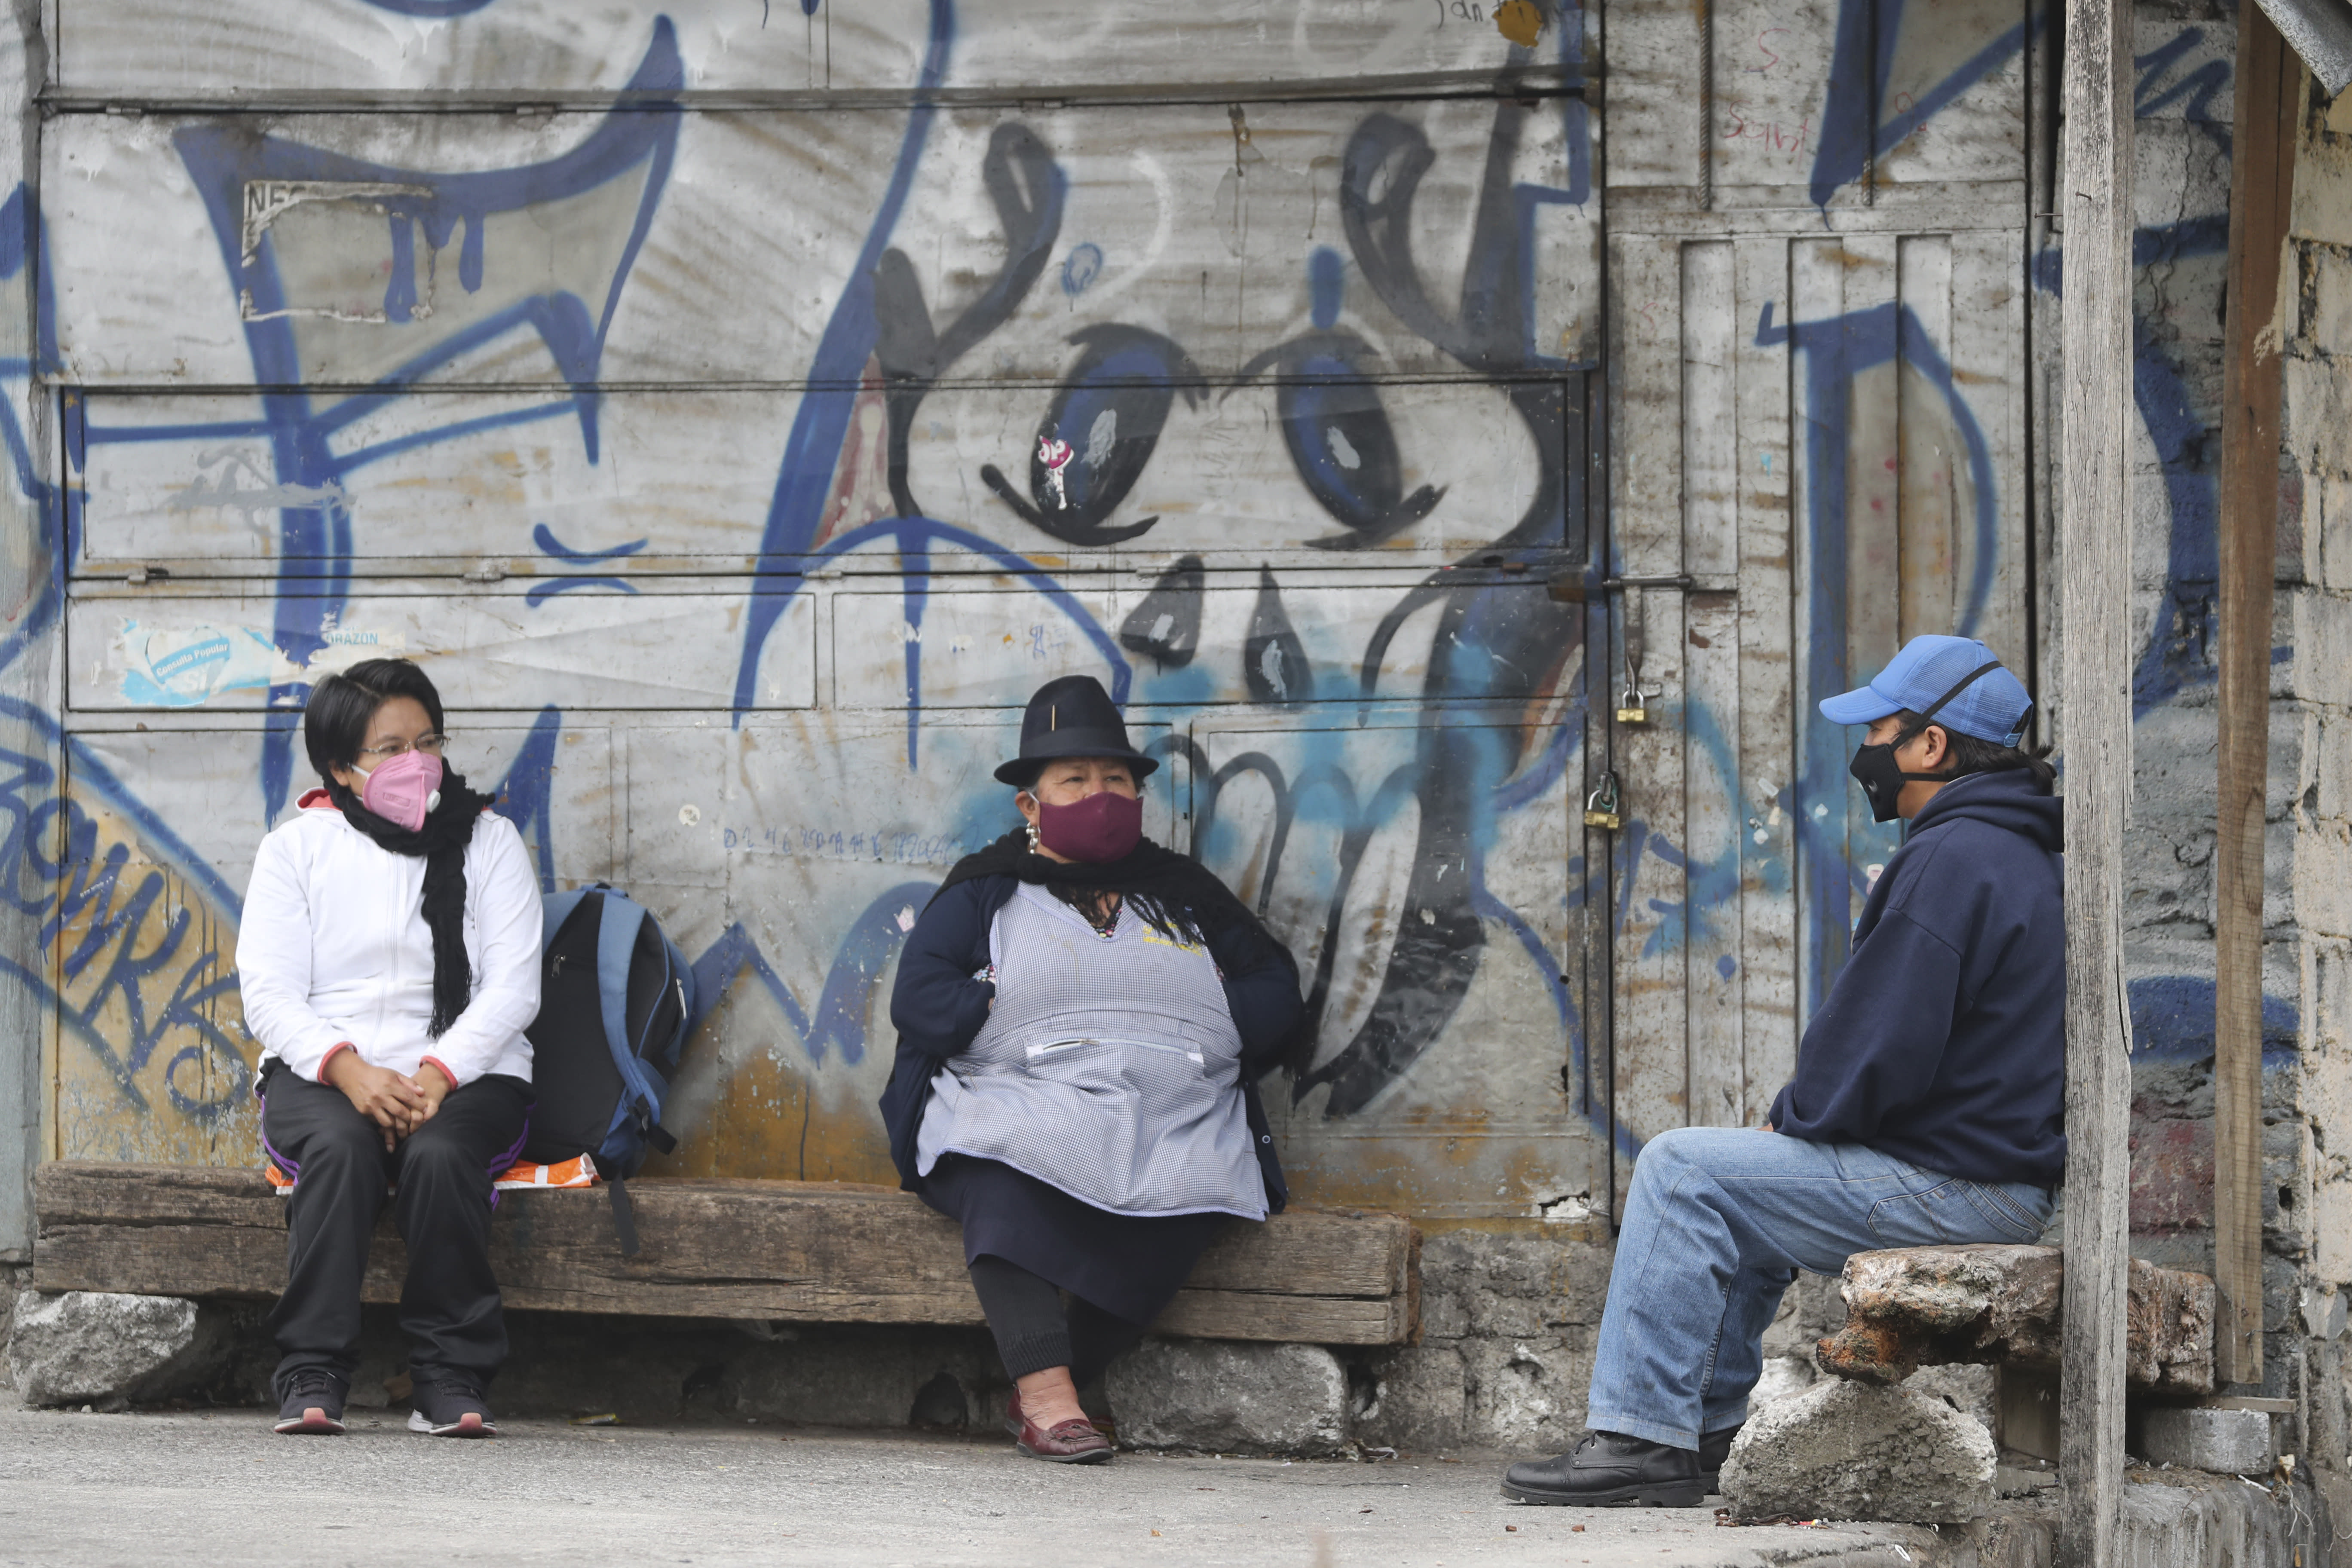 People wearing protective face masks, wait their turn to get COVID-19 tests, while sitting on makeshift benches outside a health clinic in Quito, Ecuador, Wednesday, July 29, 2020. The Ecuadorian capital has experienced a surge in COVID-19 cases since the government started to reopen the economy last month. (AP Photo/Dolores Ochoa)